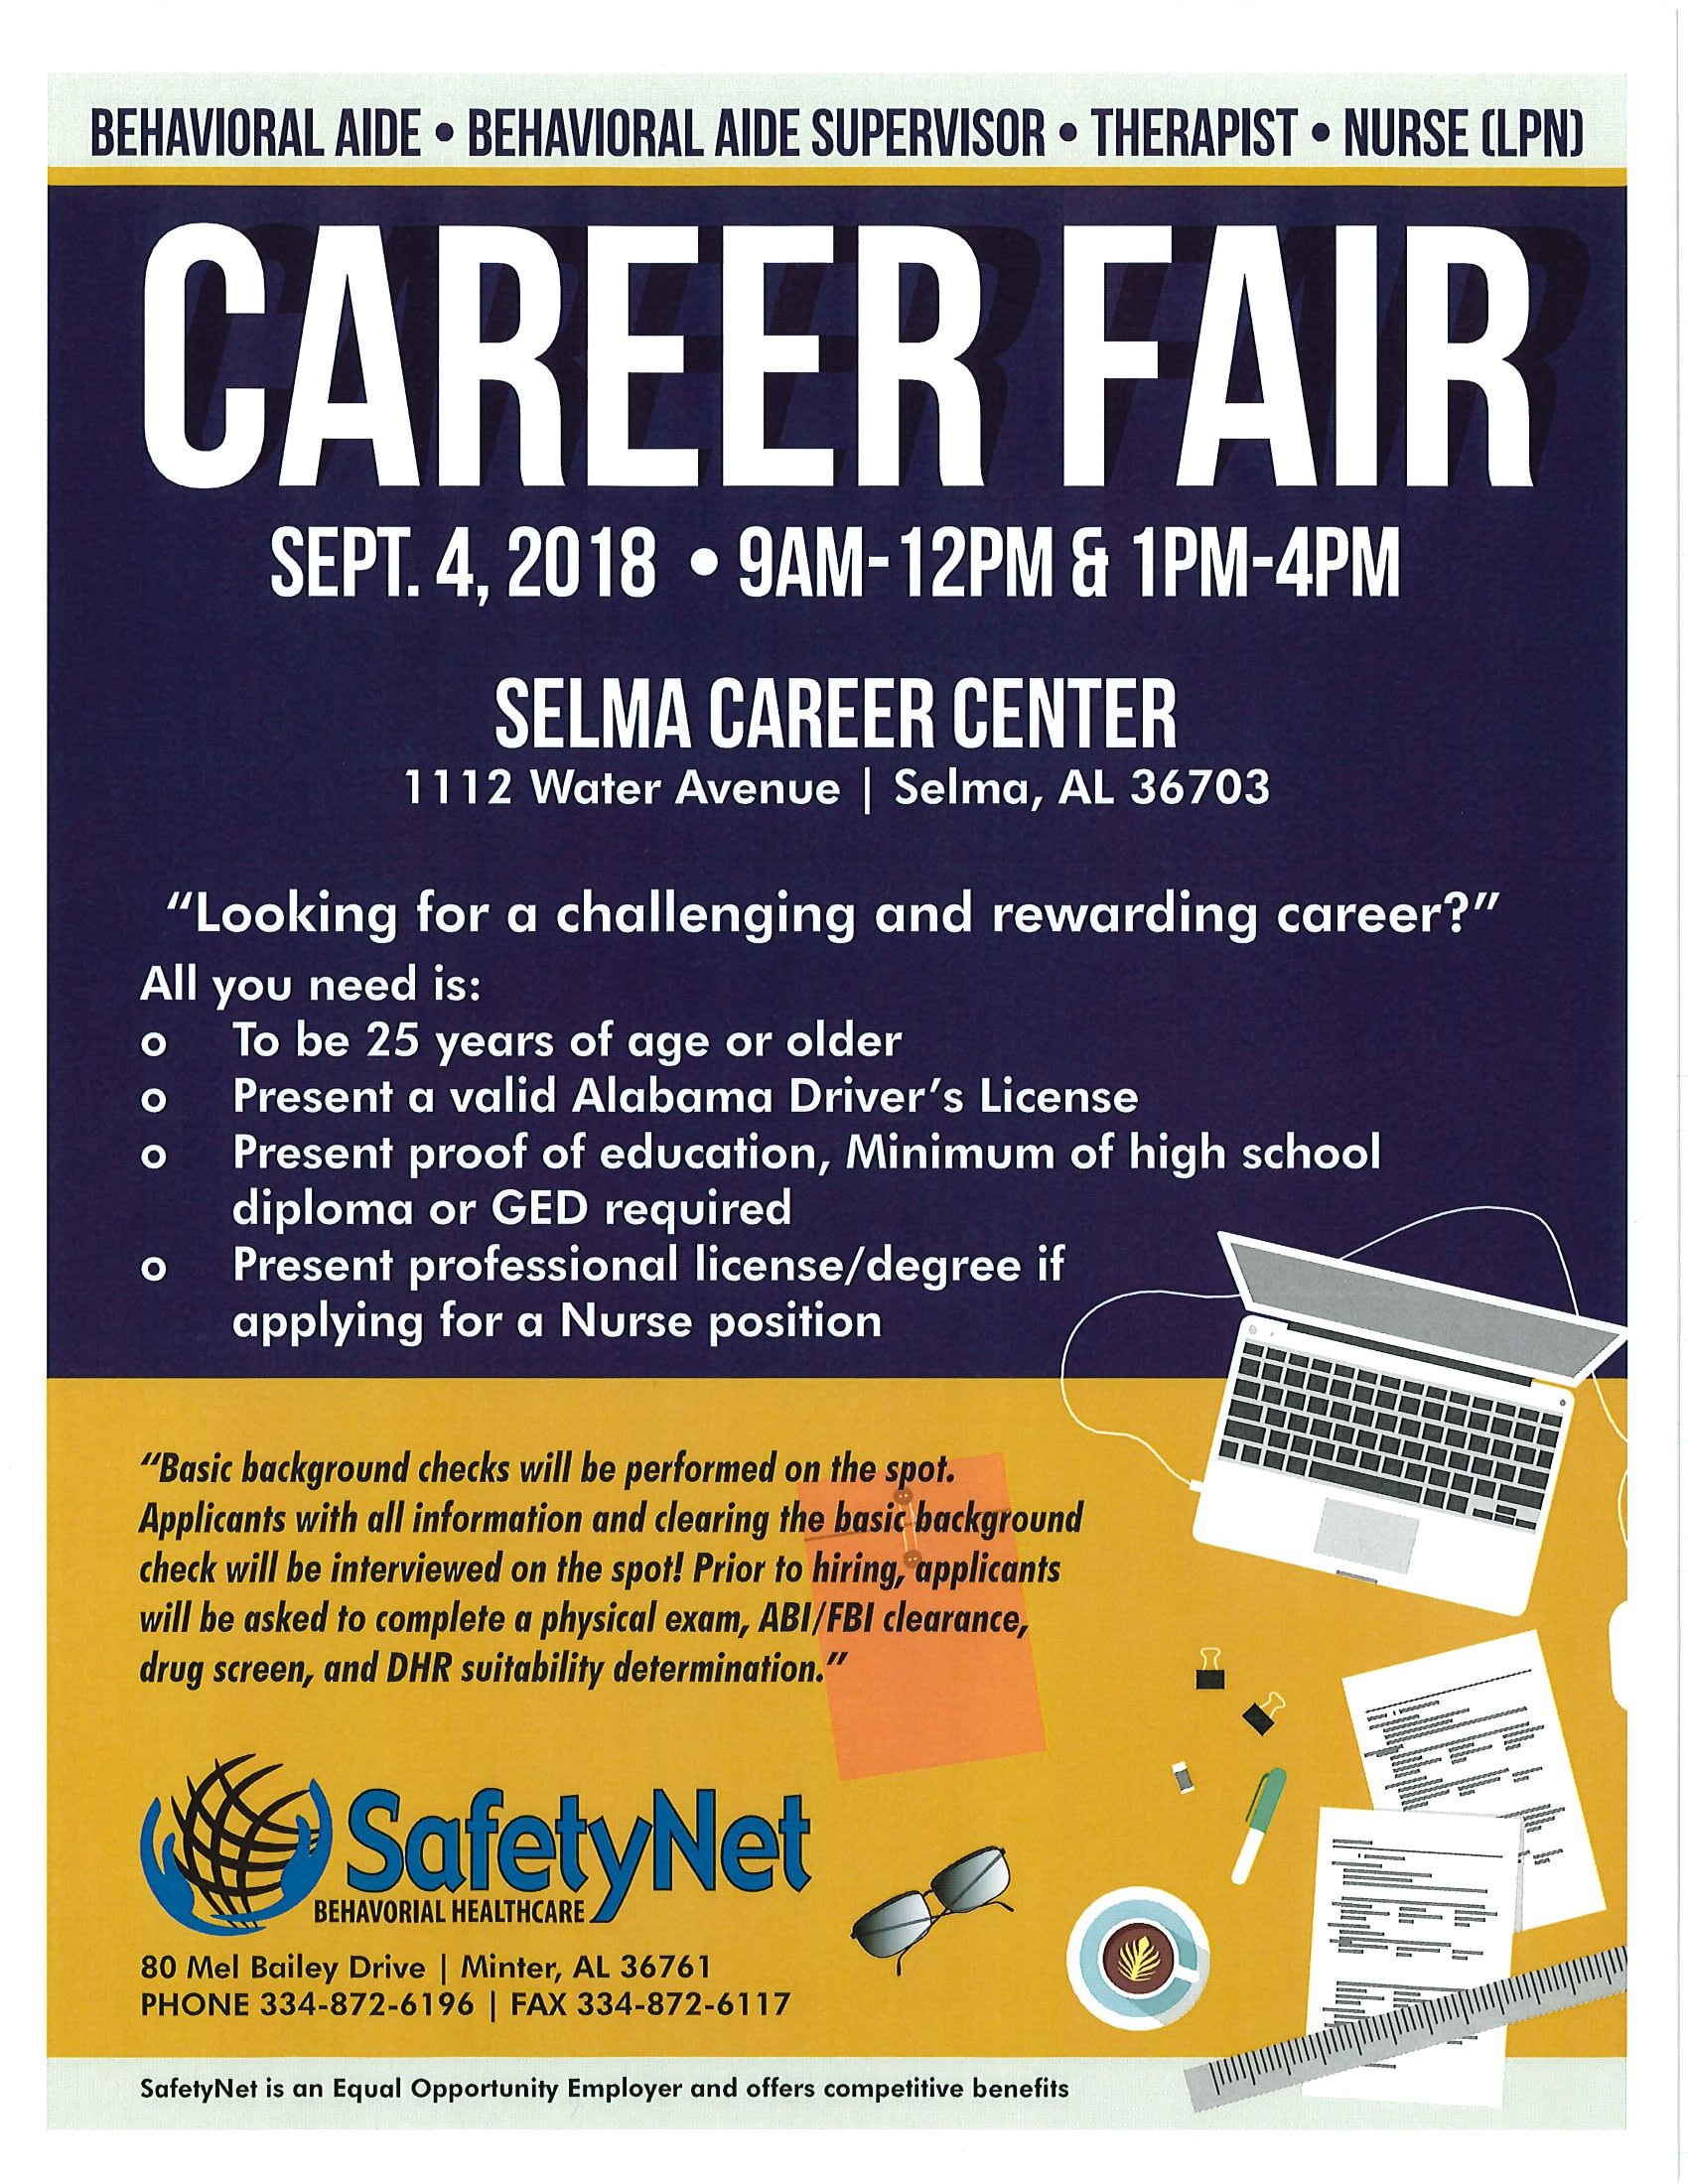 SafetyNet Career Fair